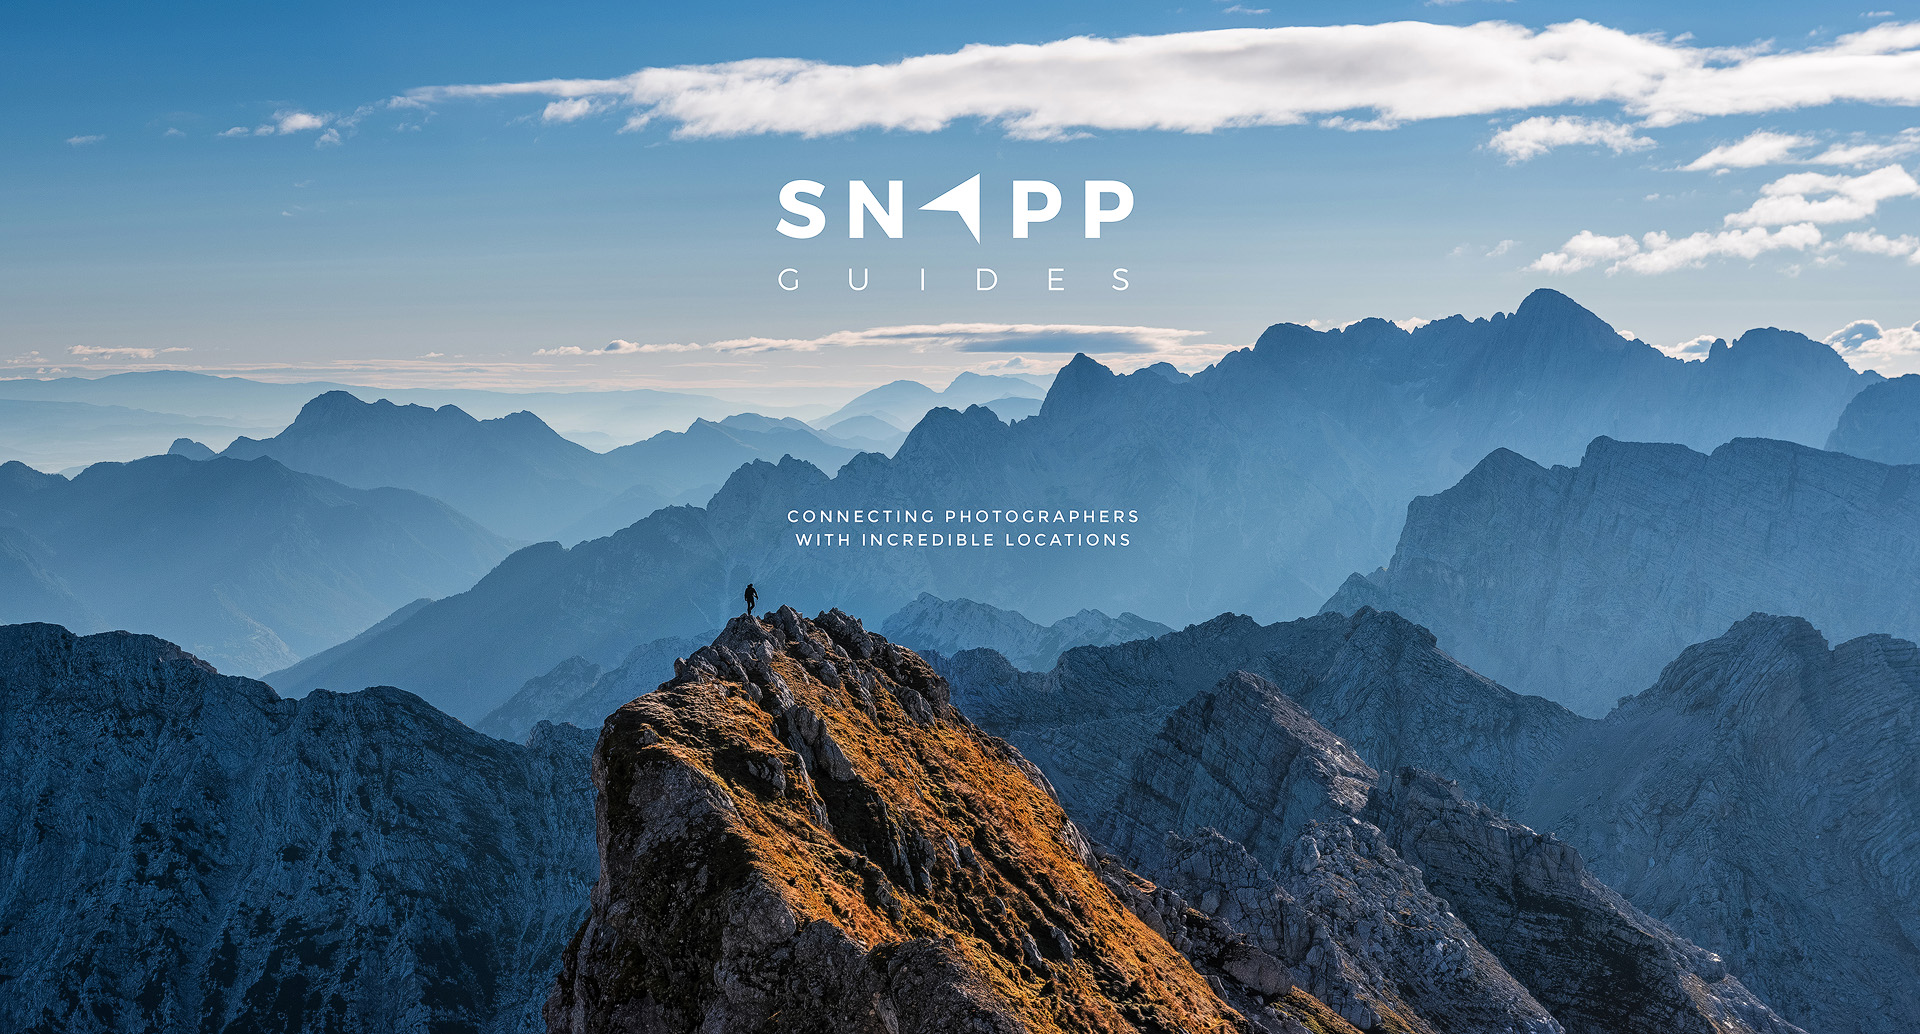 SNAPP Guides logo and strapline